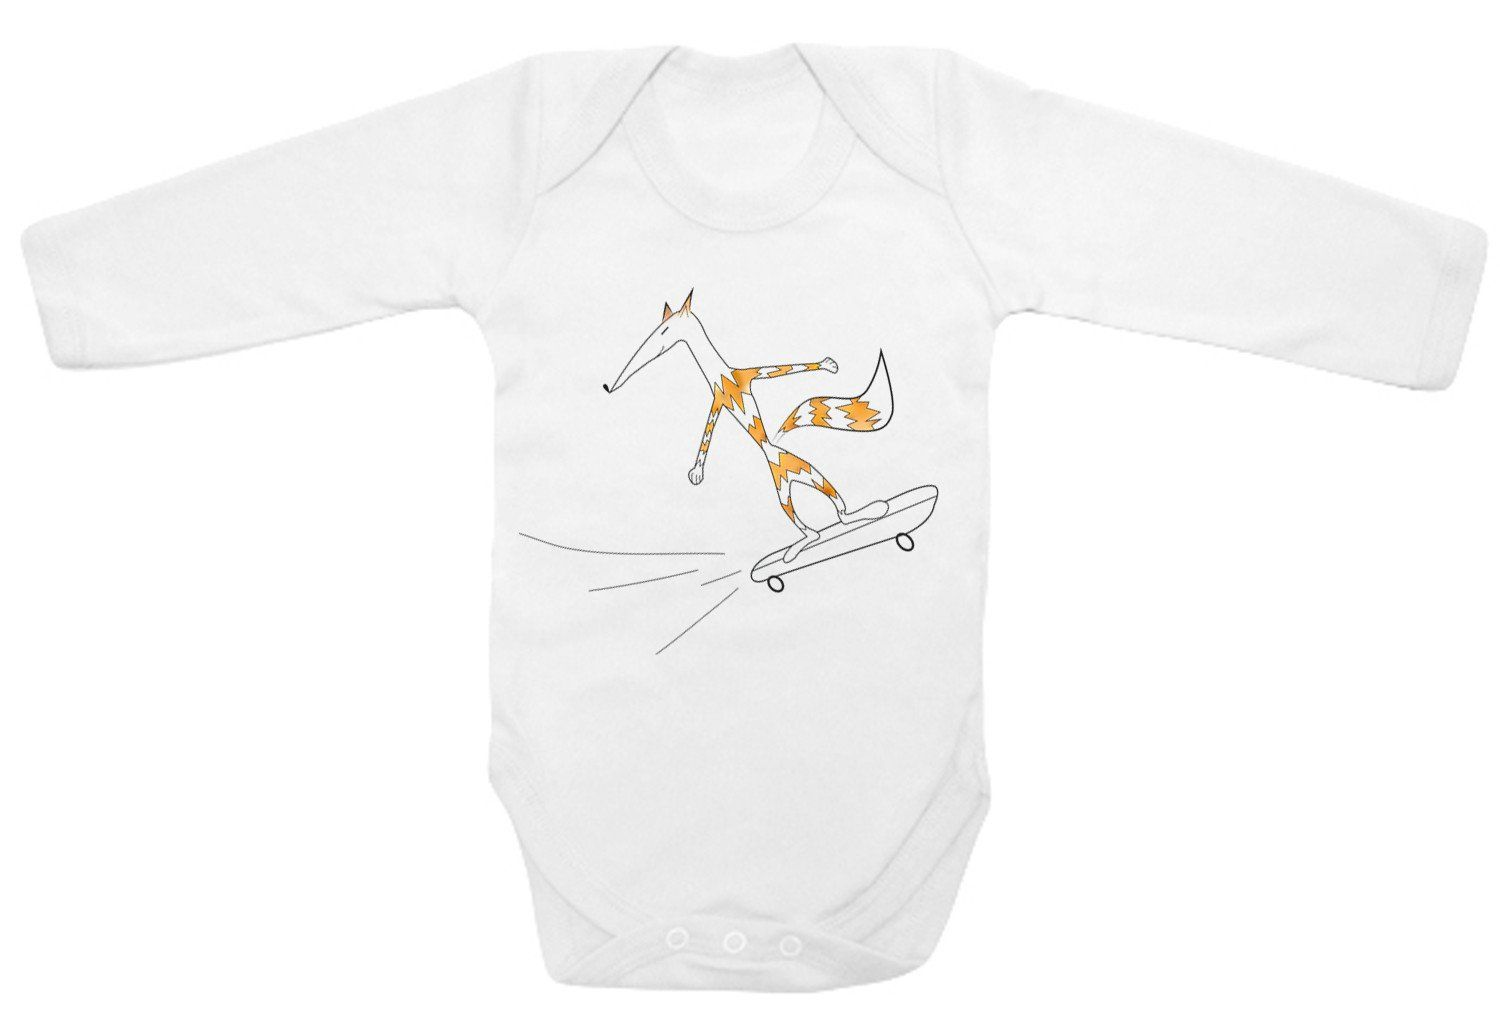 Babygrow - Fox On A Skateboard Bodysuit, Hand Painted